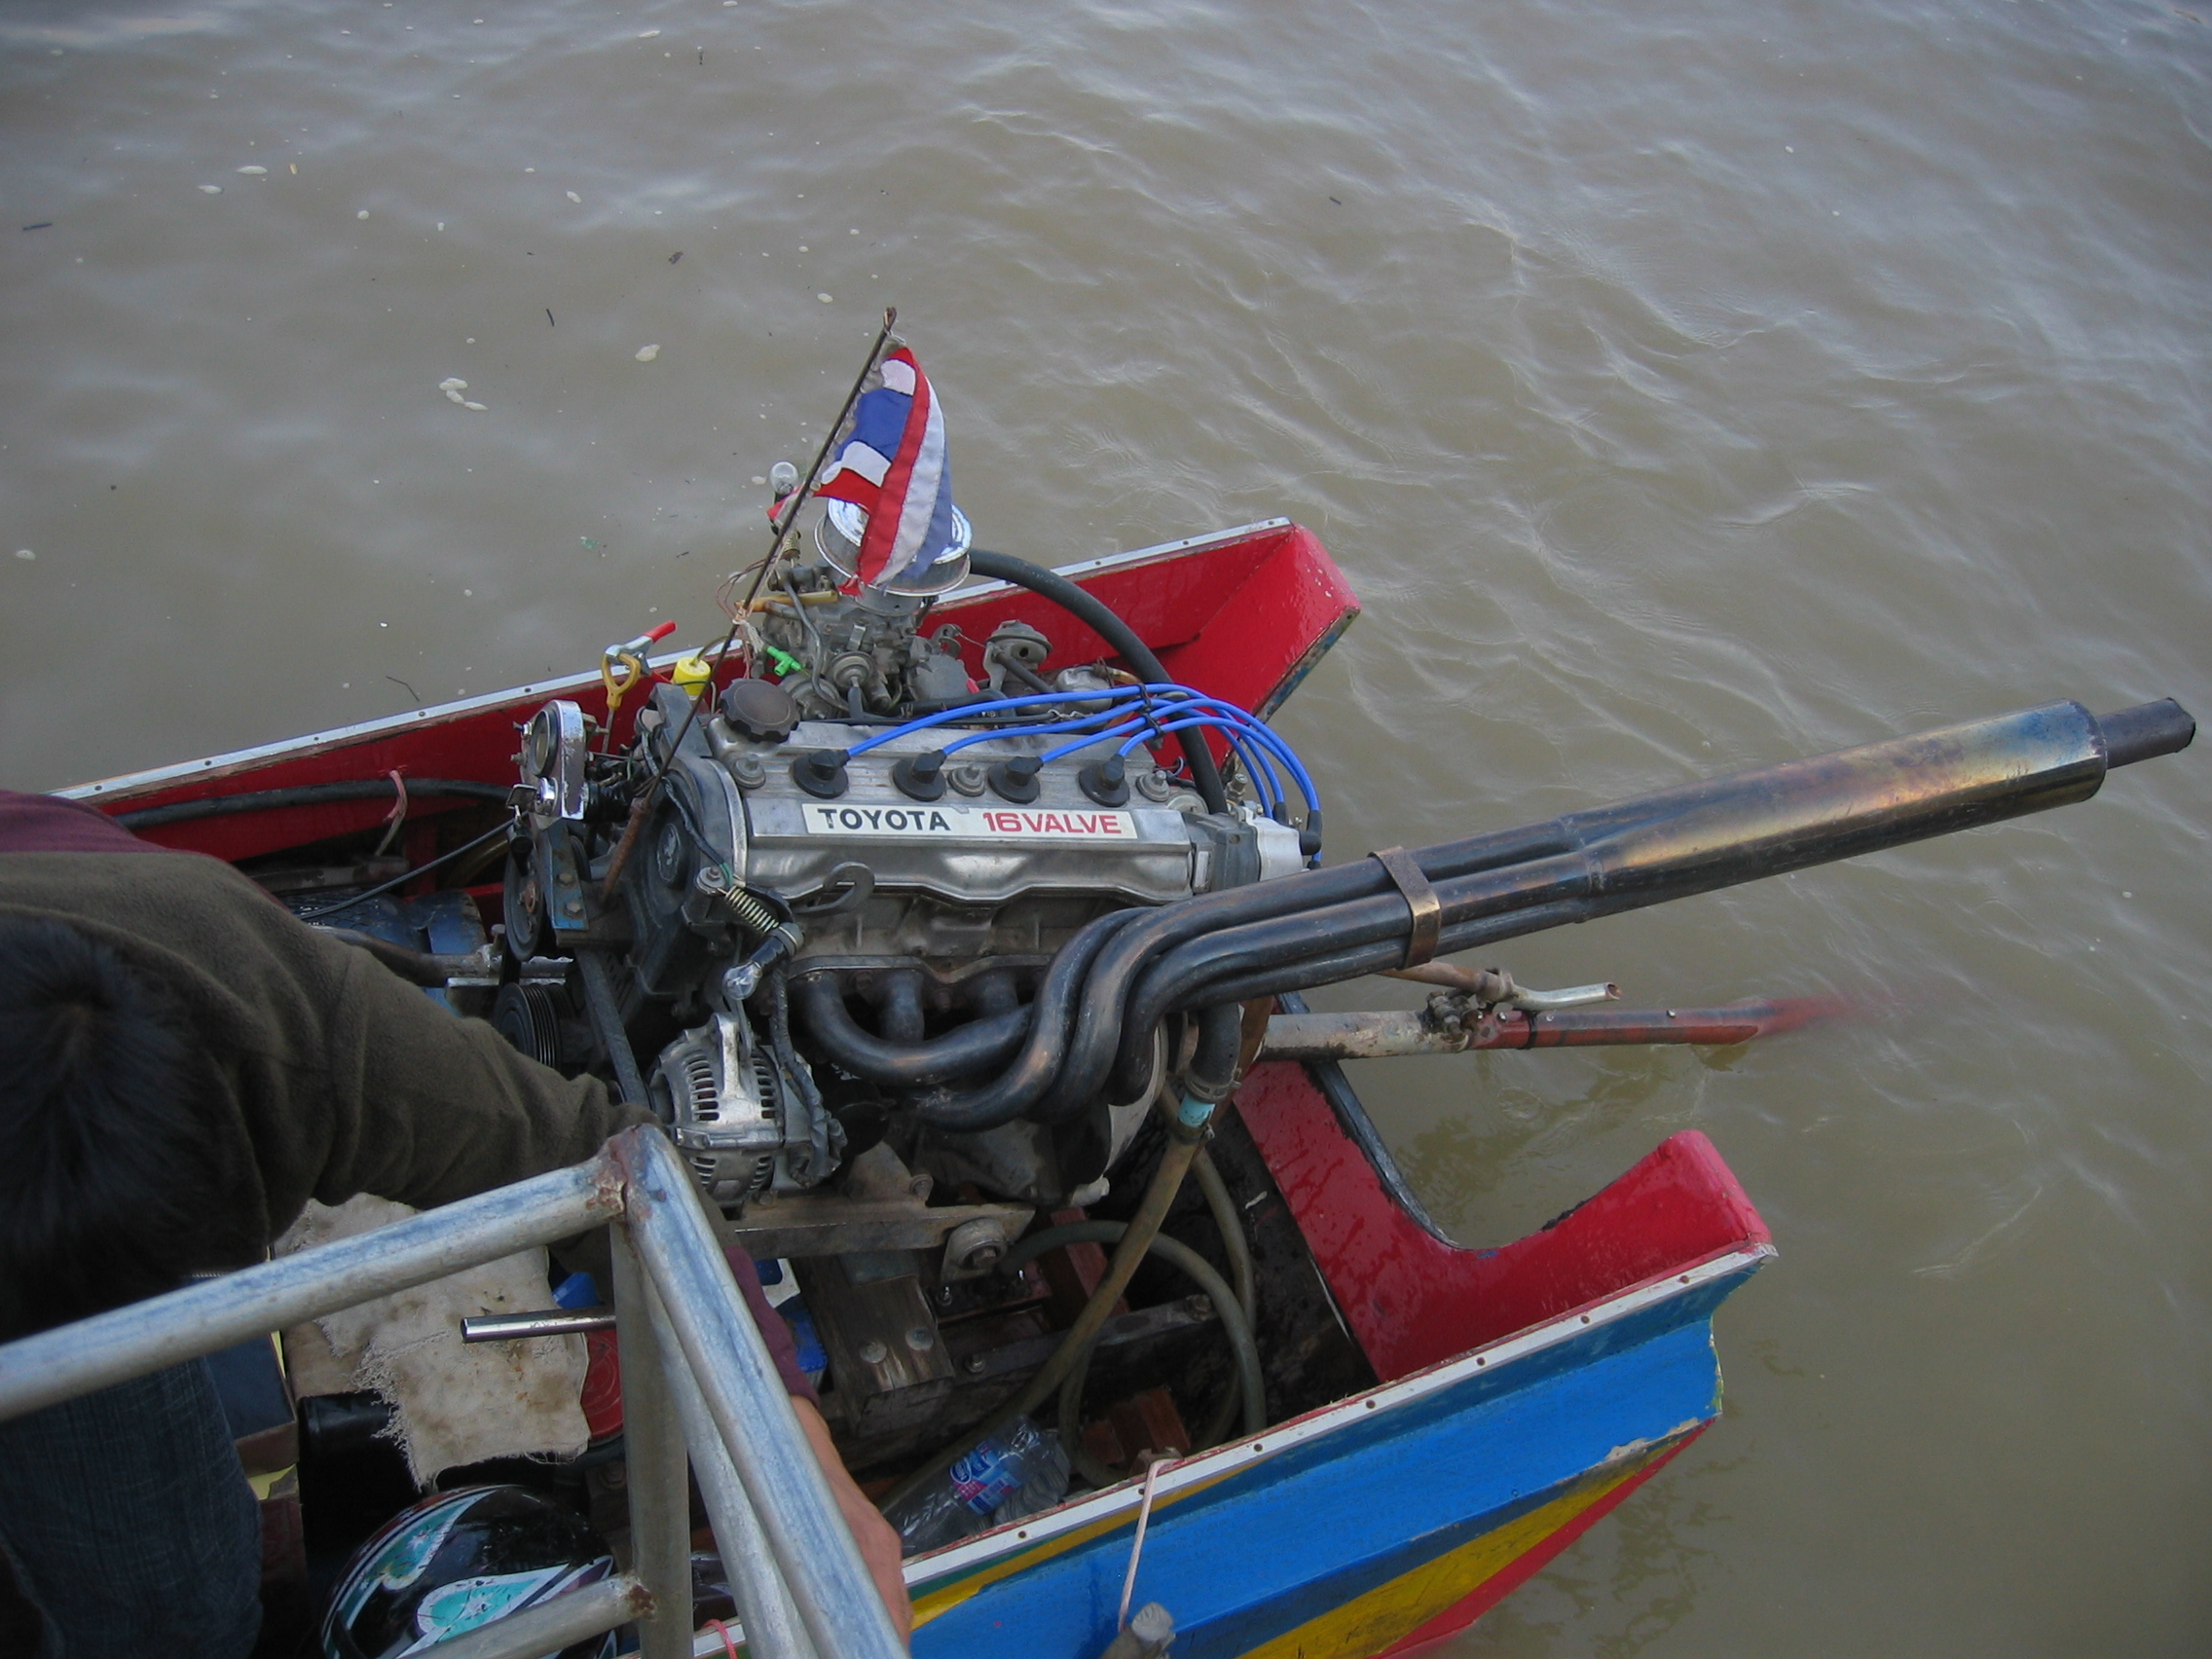 File:Long-tail boat engine.jpg - Wikimedia Commons